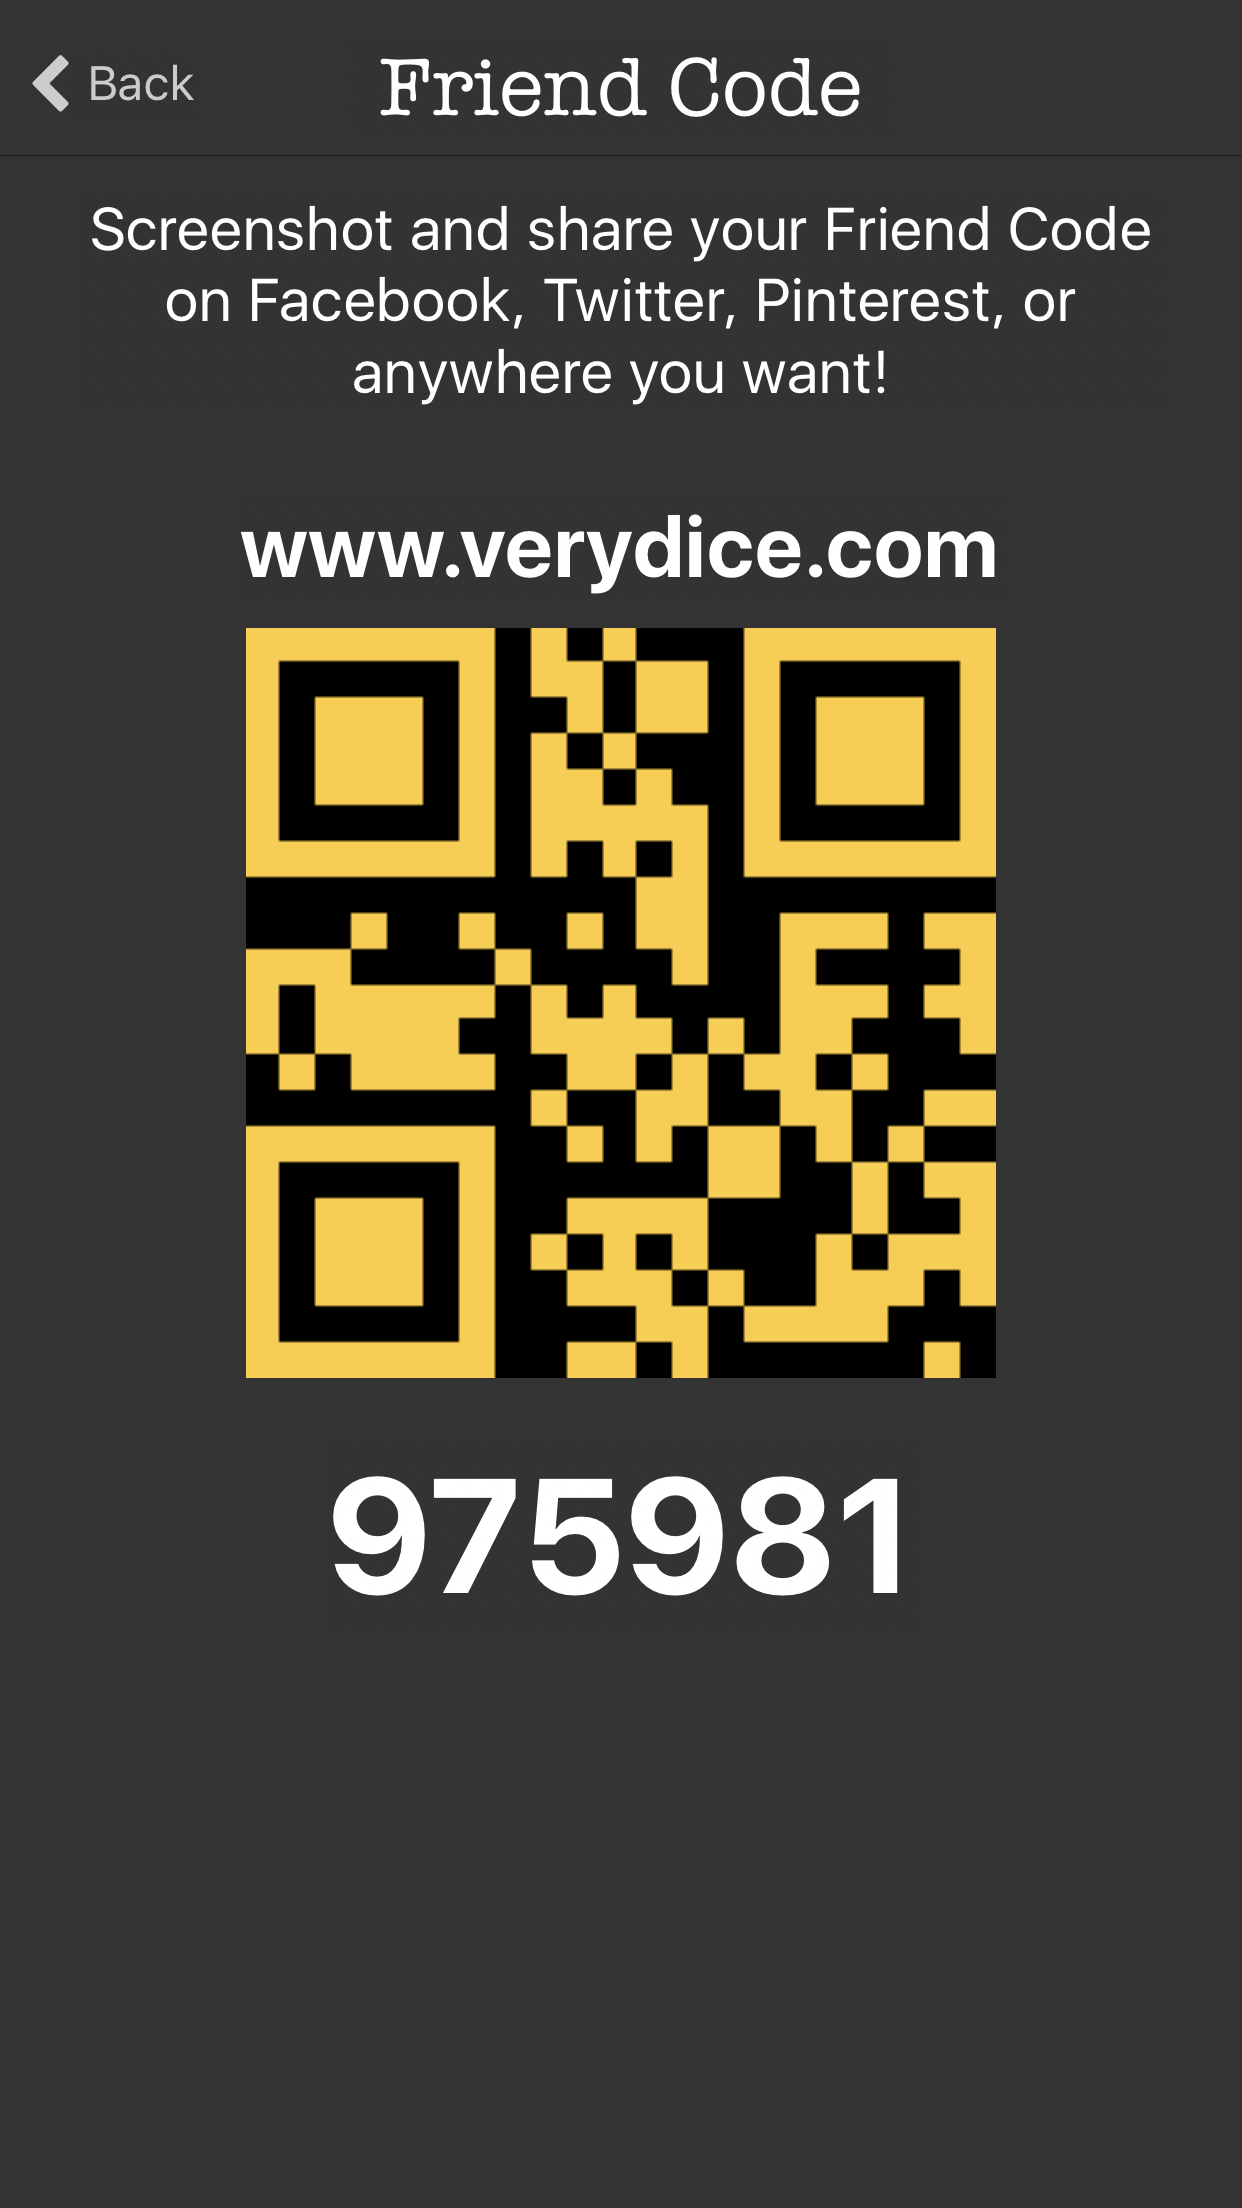 Come play verydice and redeem points for cool things